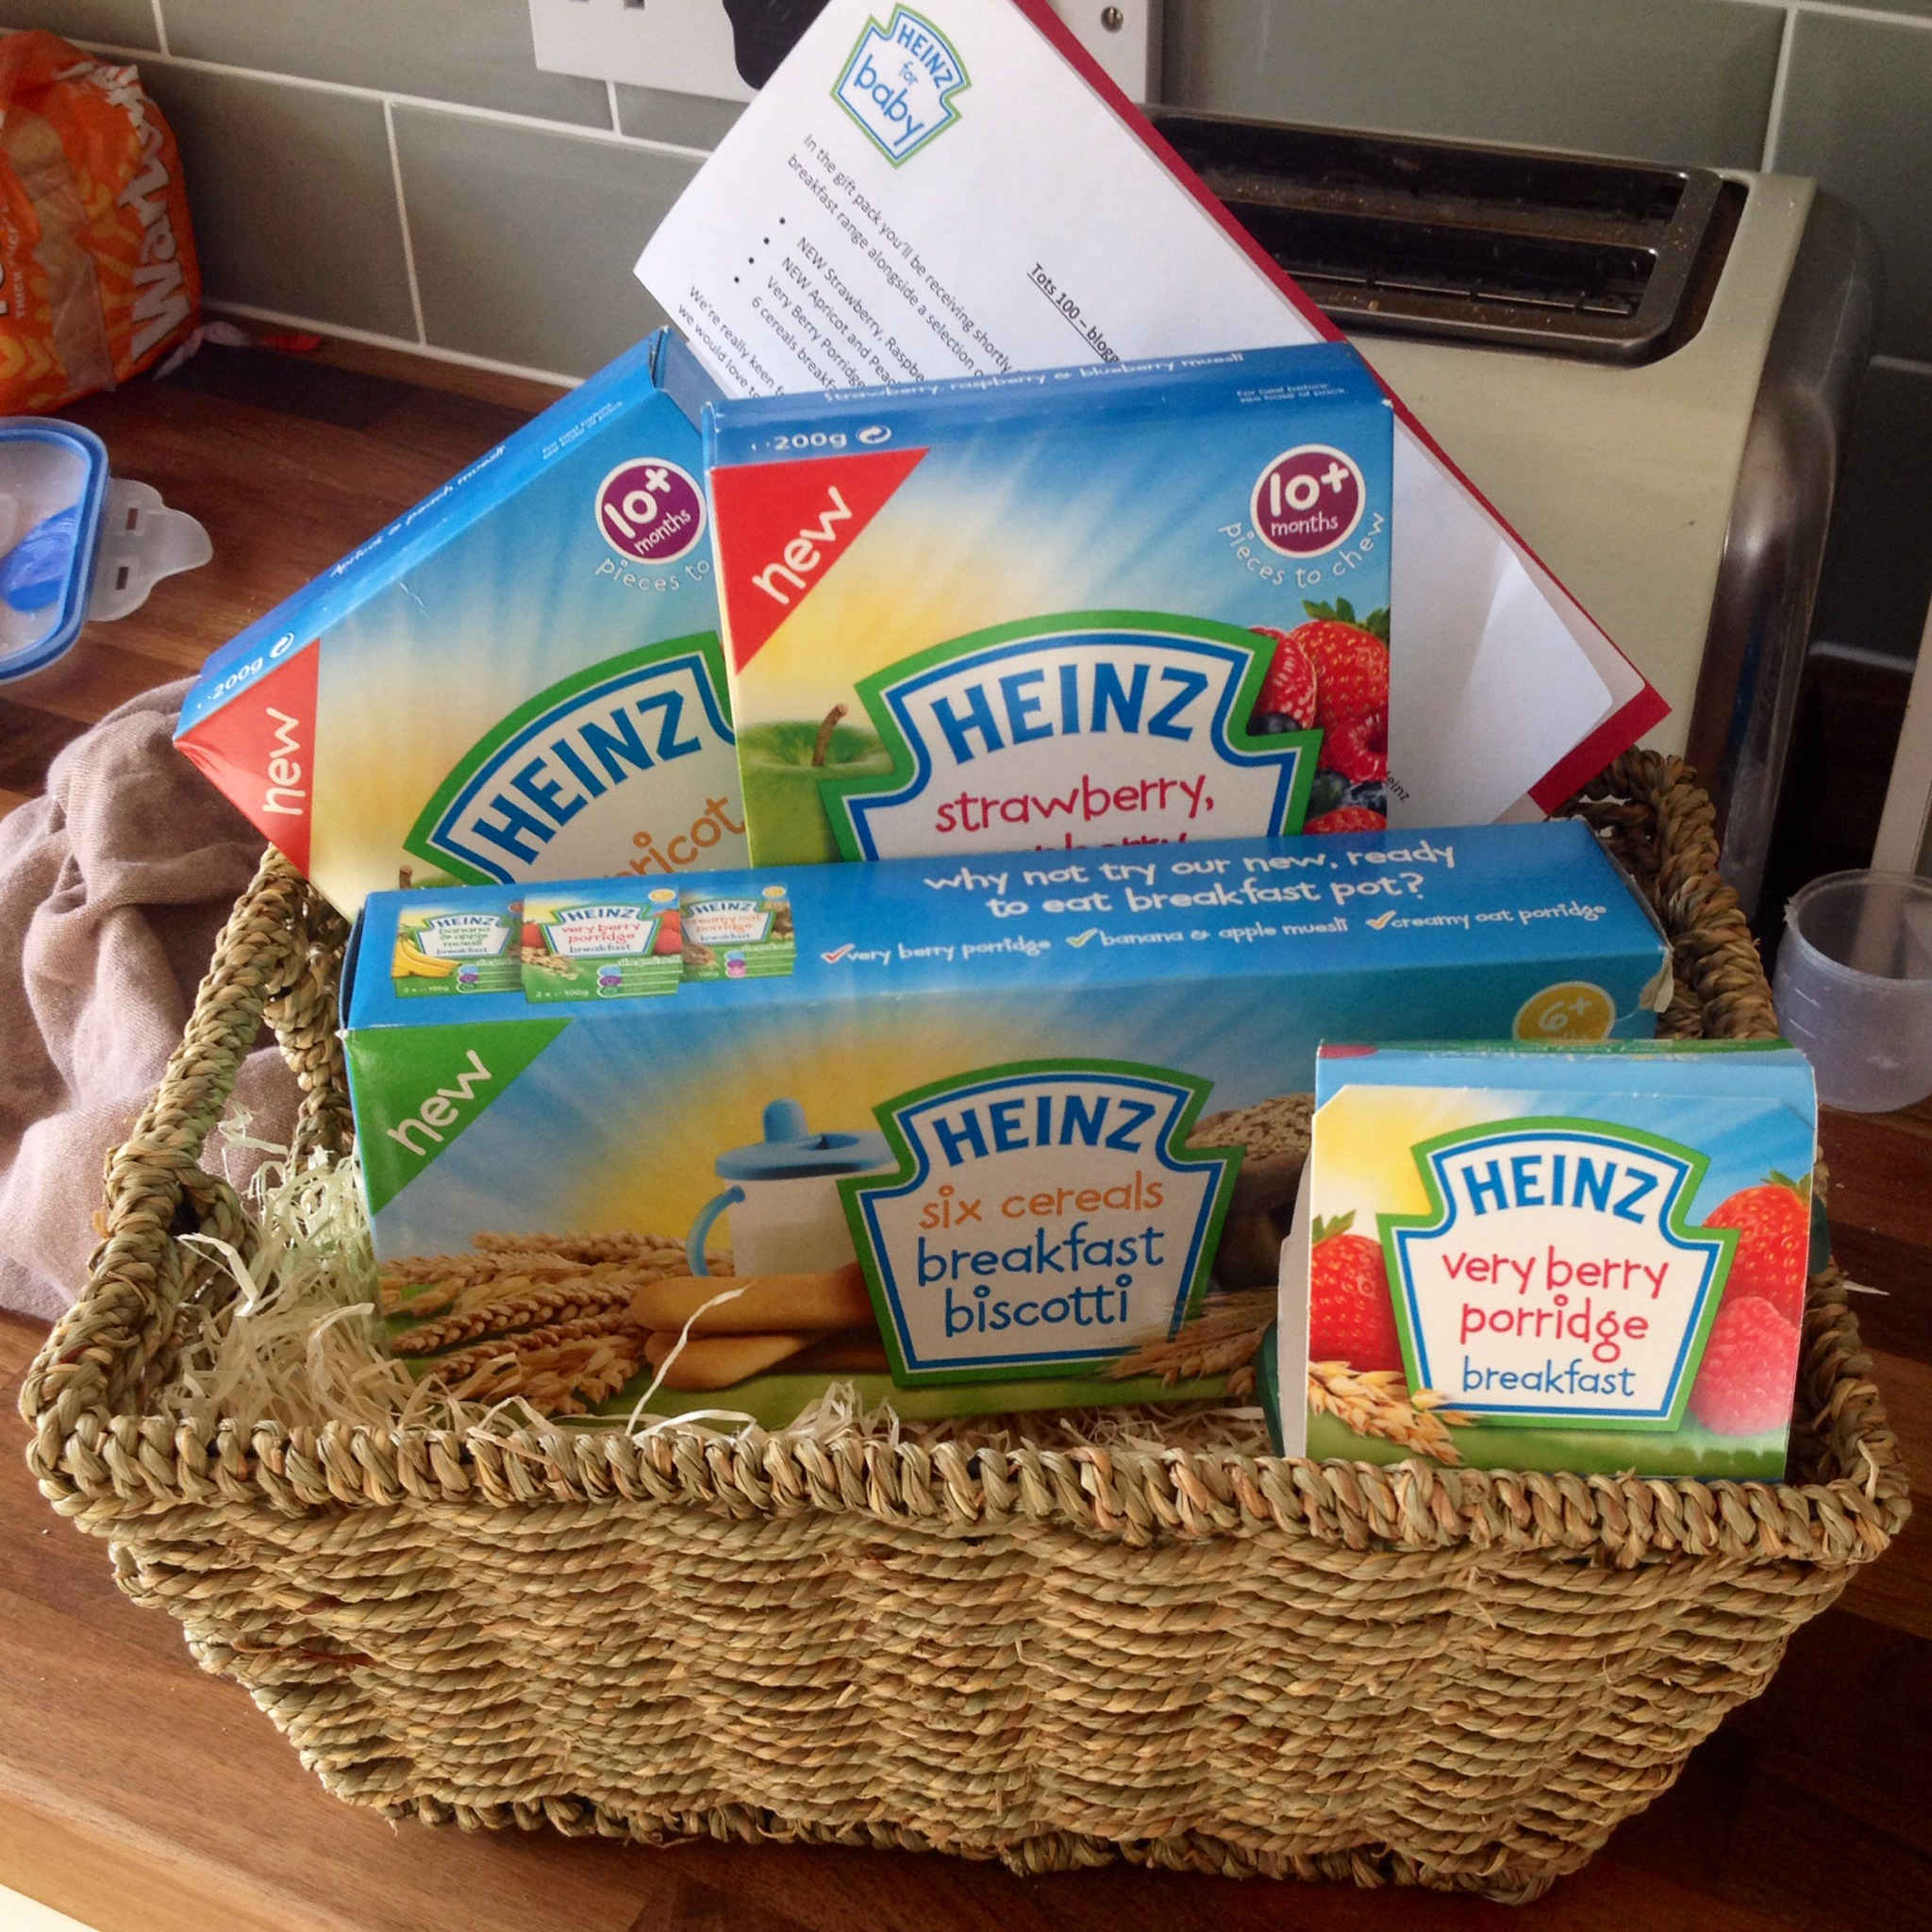 Lamb Bear And Heinz Baby Food We Were Very Lucky To Receive A Breakfast Hamper Last Week Full Of Delicious Goodness For The Littleuns Try